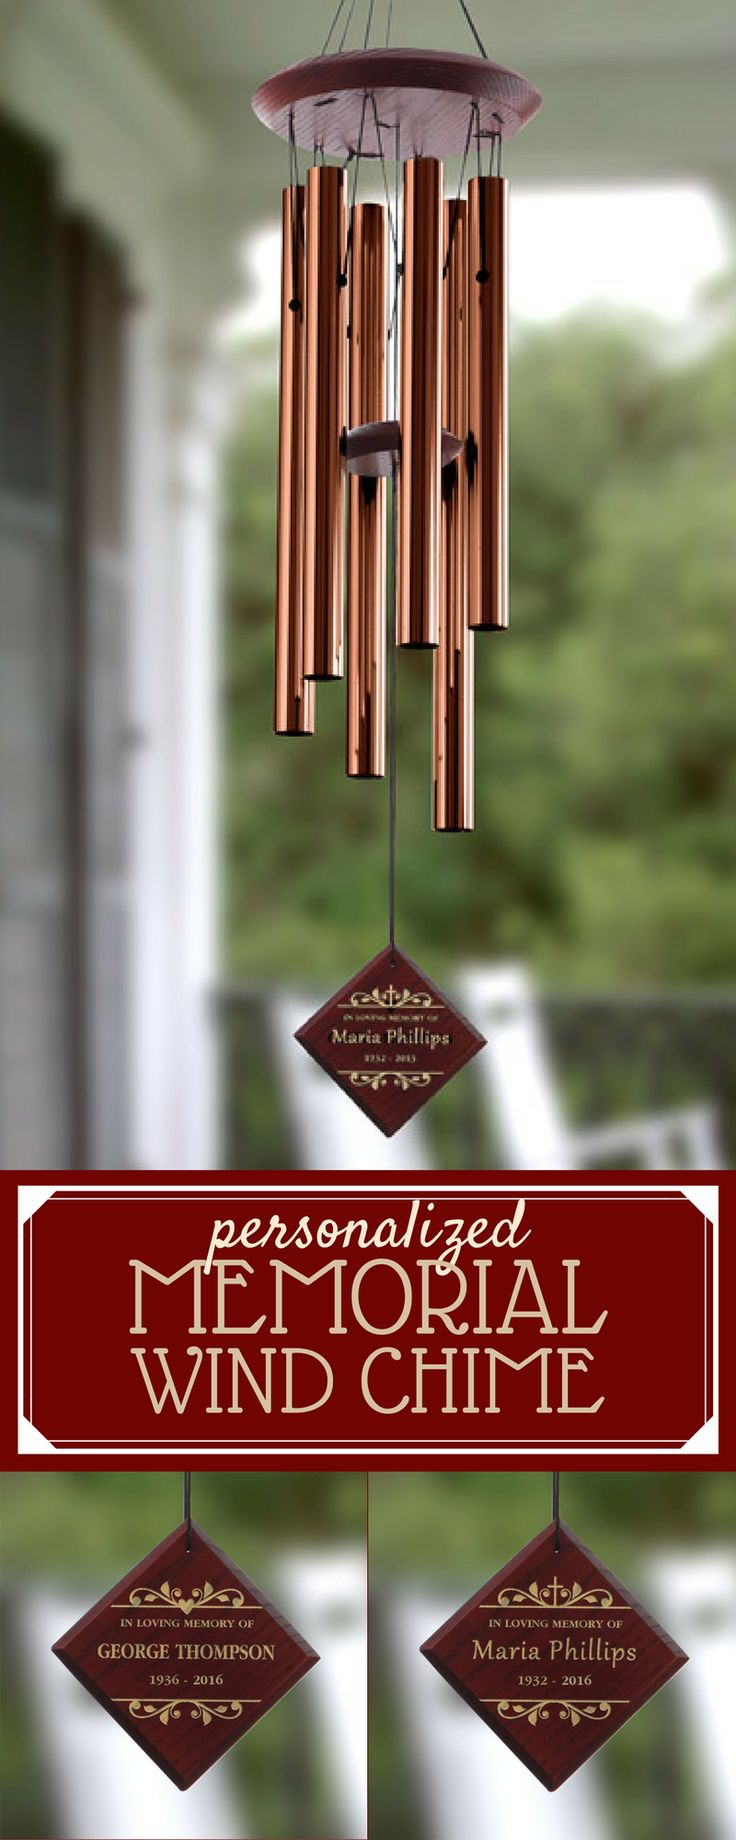 This personalized Memorial Wind Chime is such a beautiful way to remember a loved one who has passed away. This is just beautiful because you'll be remembered of your loved one every time the wind blows! You can choose a heart or cross design and have it engraved with any name and memorial dates.